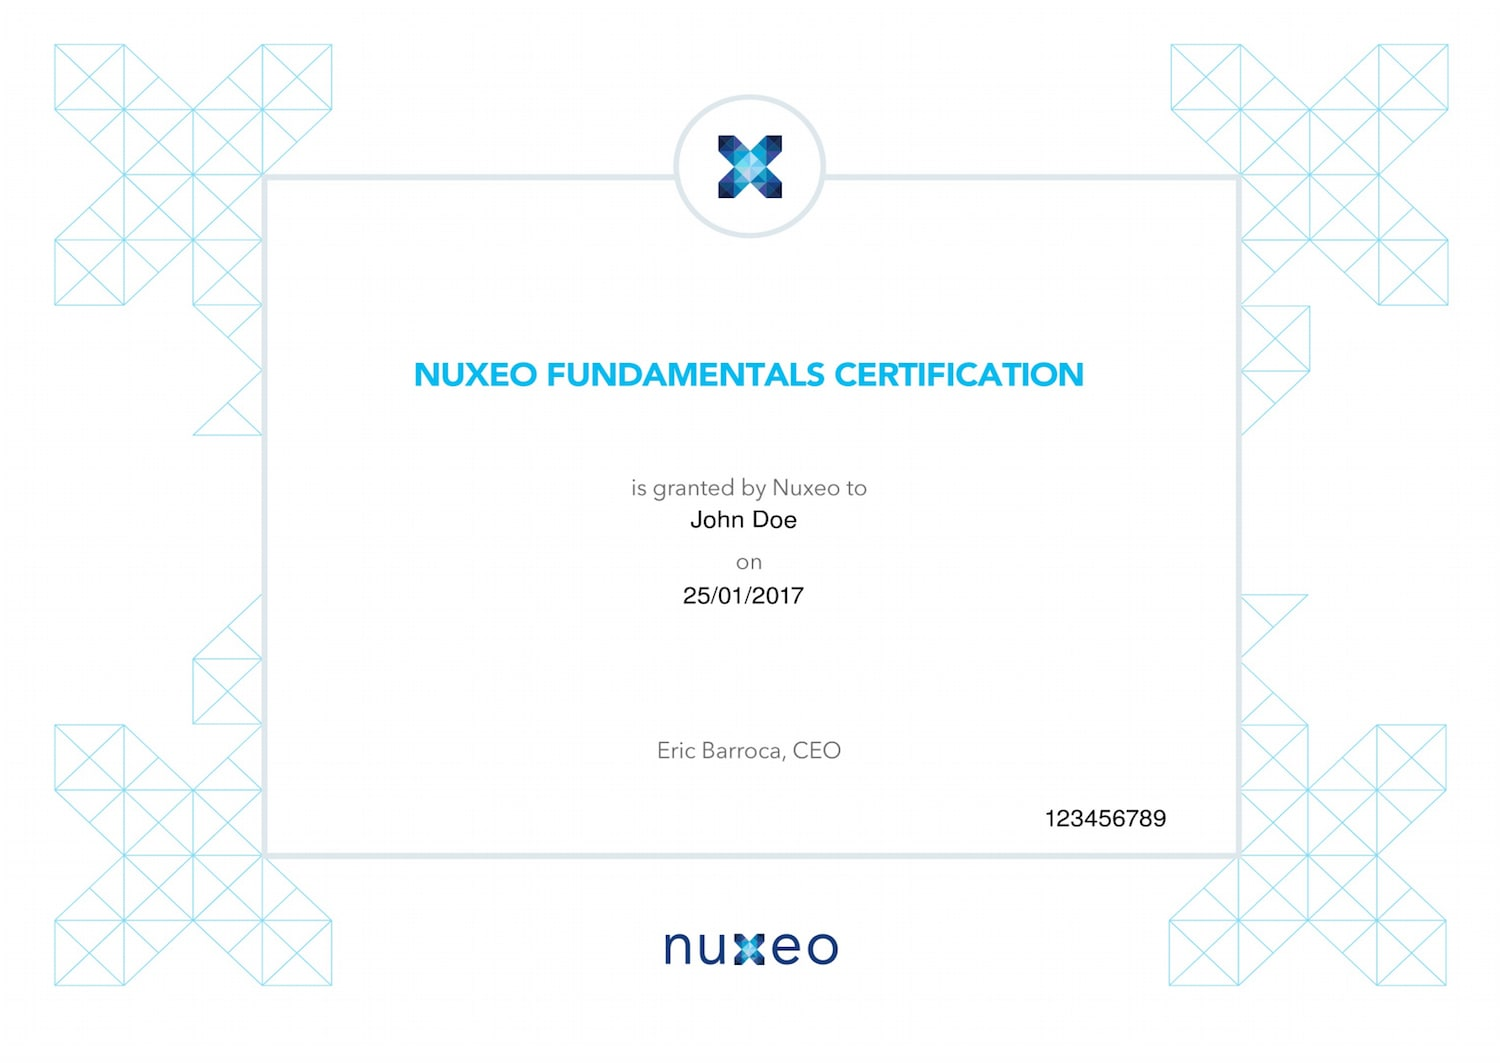 nuxeo certification